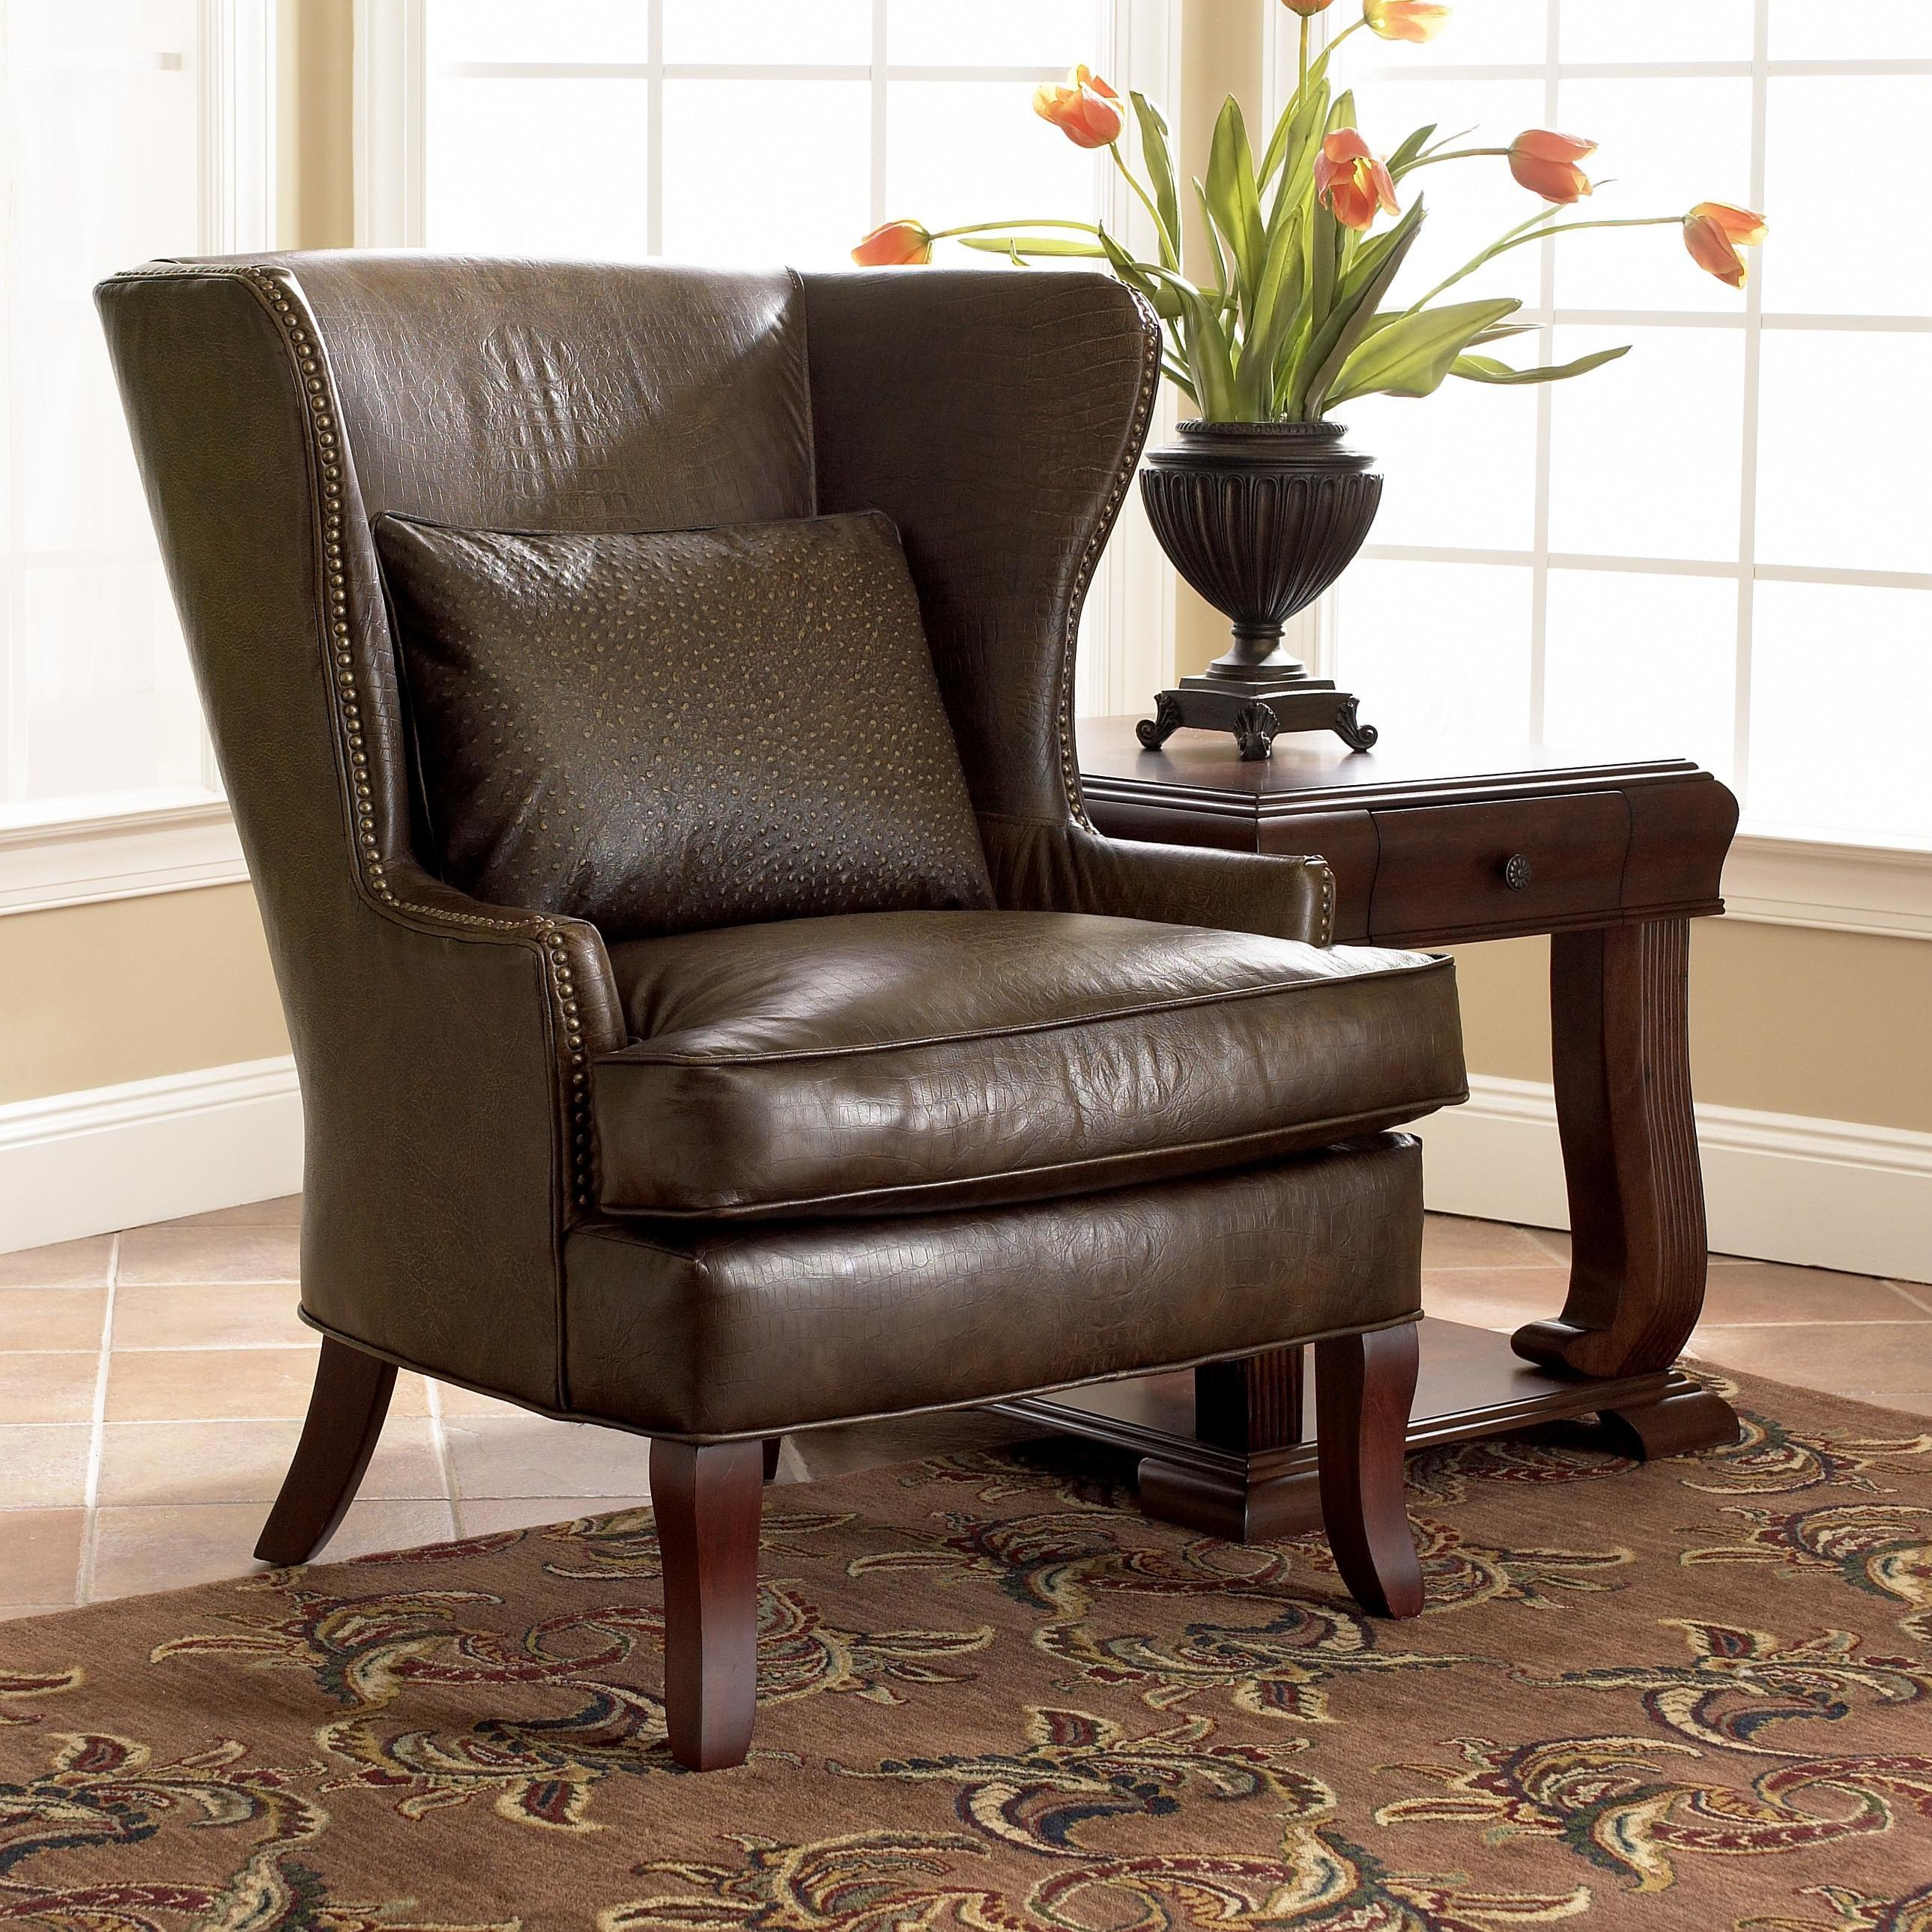 Chairs And Accents By Klaussner